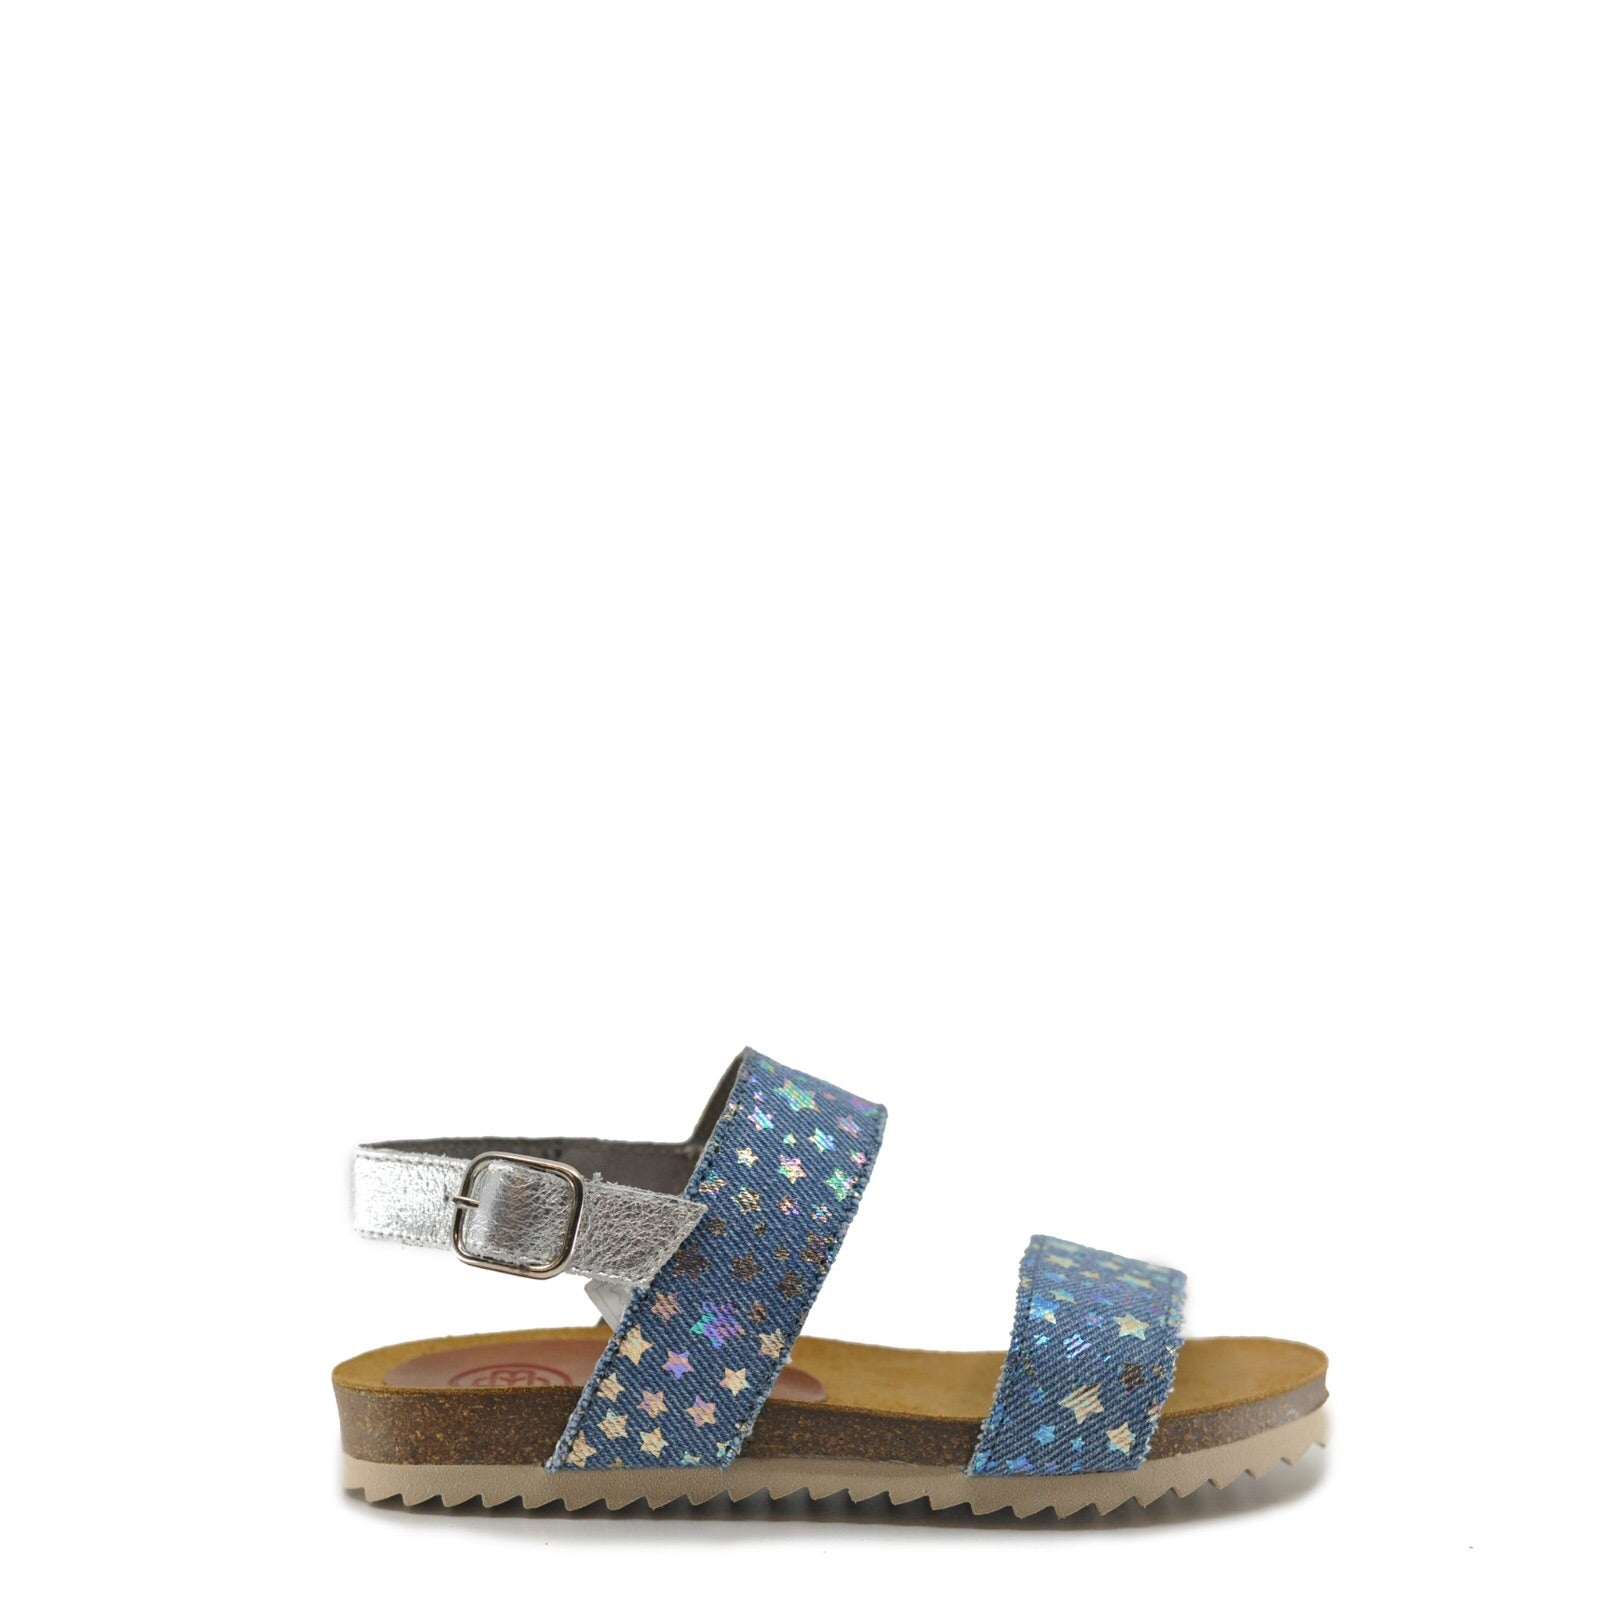 Blublonc Denim Star Buckle Sandal-Tassel Children Shoes